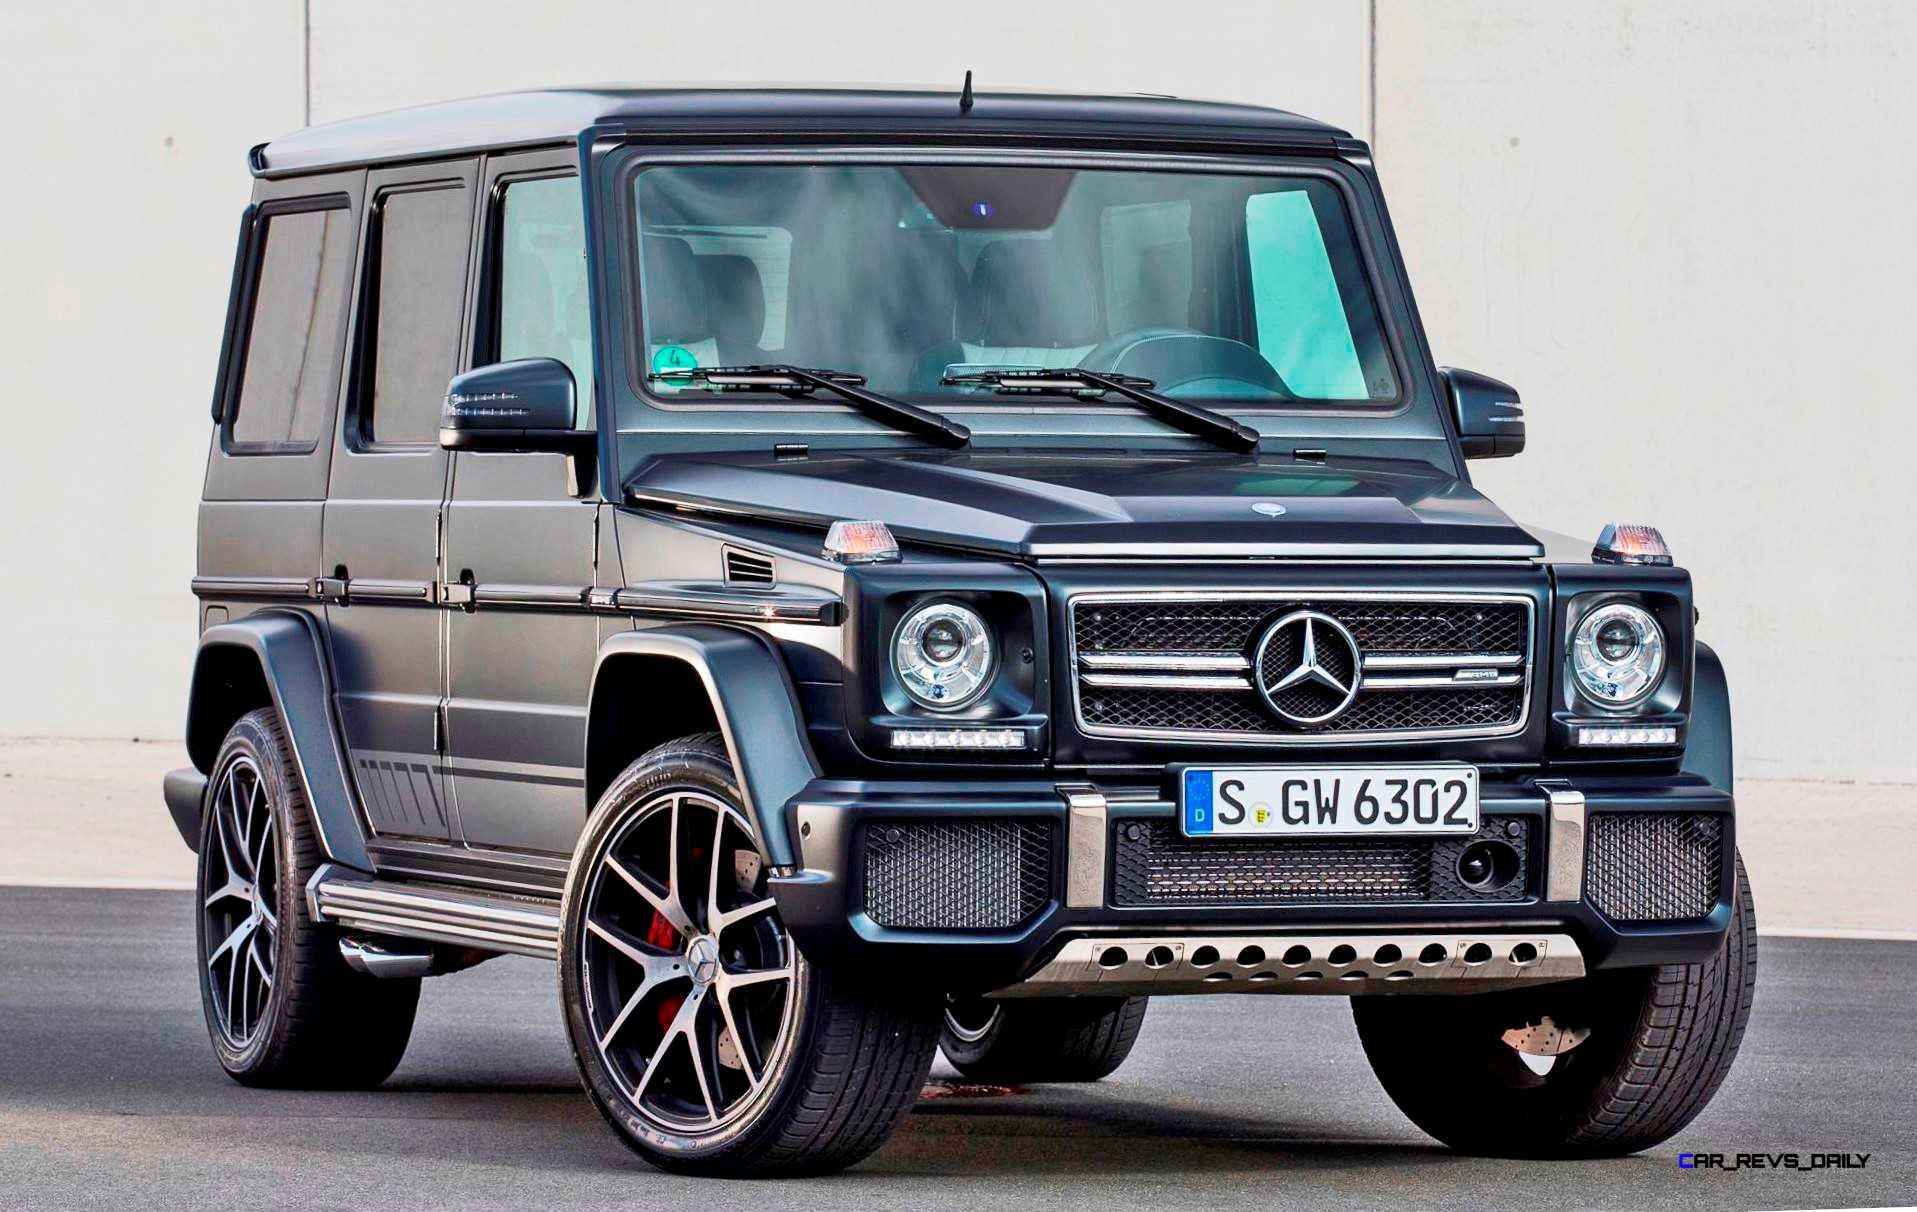 jeep united for kingdom sale on cars in extreme us specification mercedes london amg benz g